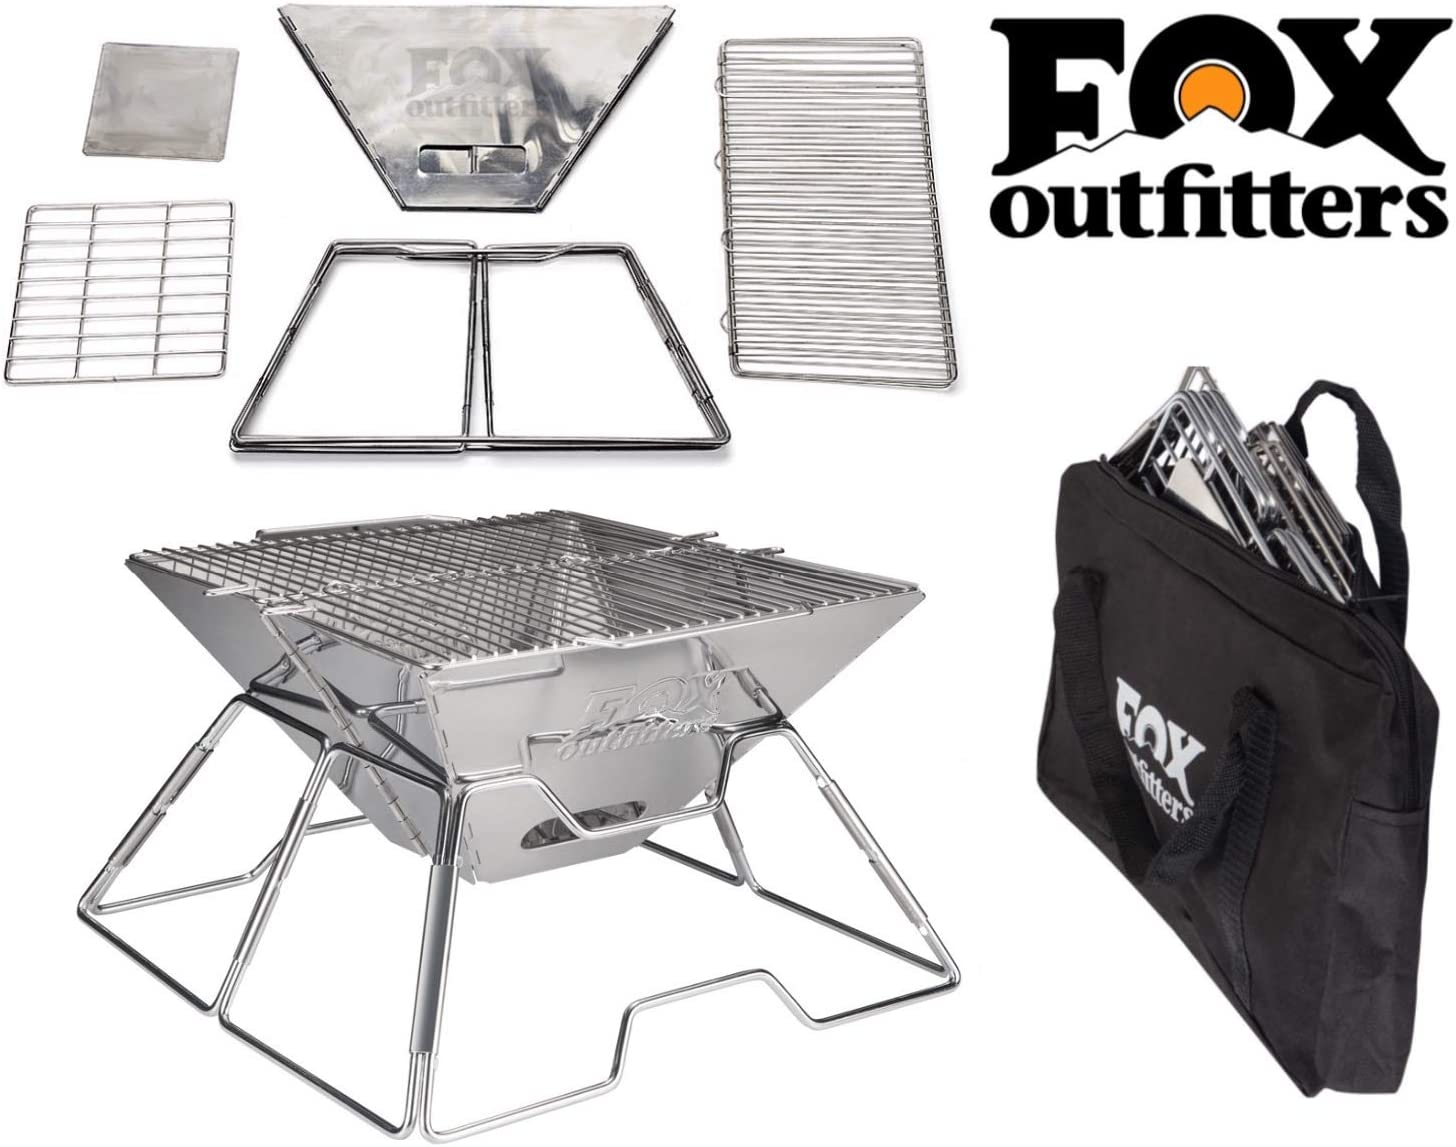 Quick Grill Medium Original Folding Charcoal BBQ Grill Made from Stainless Steel